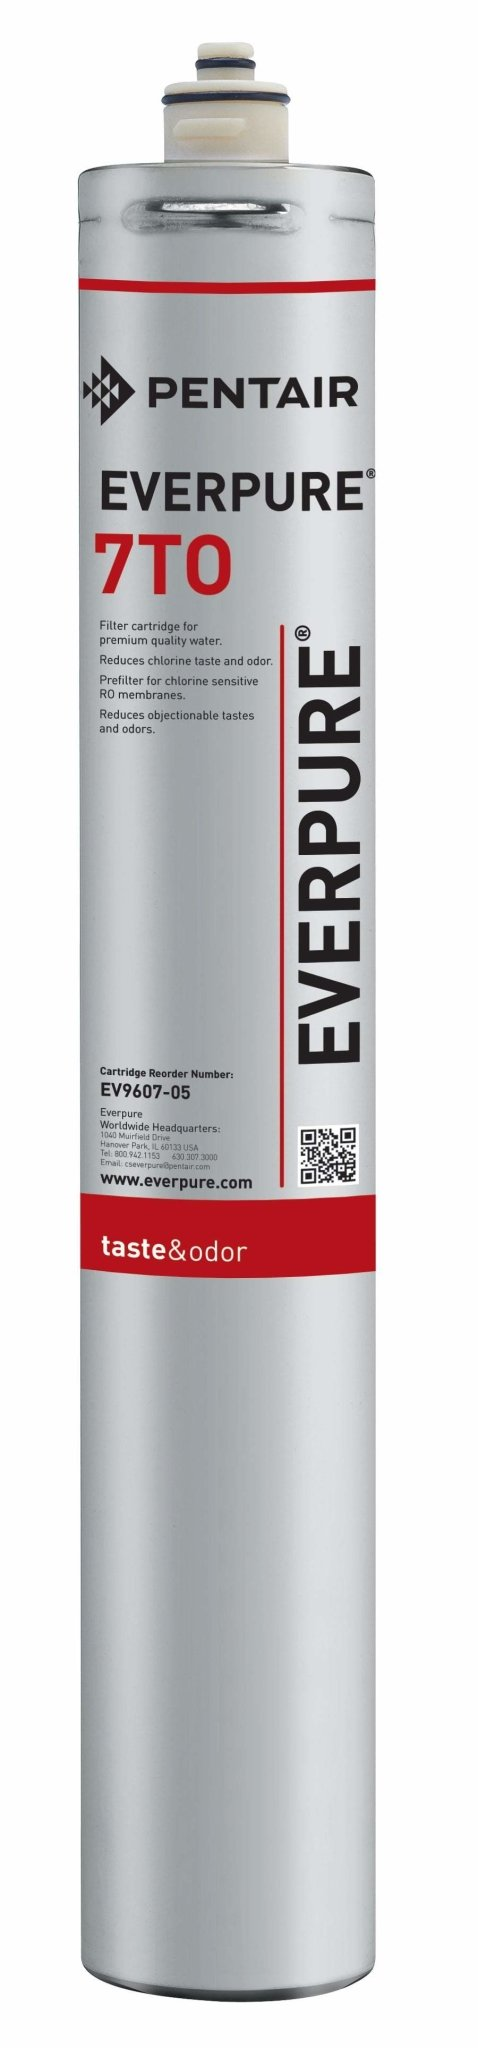 Everpure 7TO Cartridge EV9607-05 - Efilters.ca